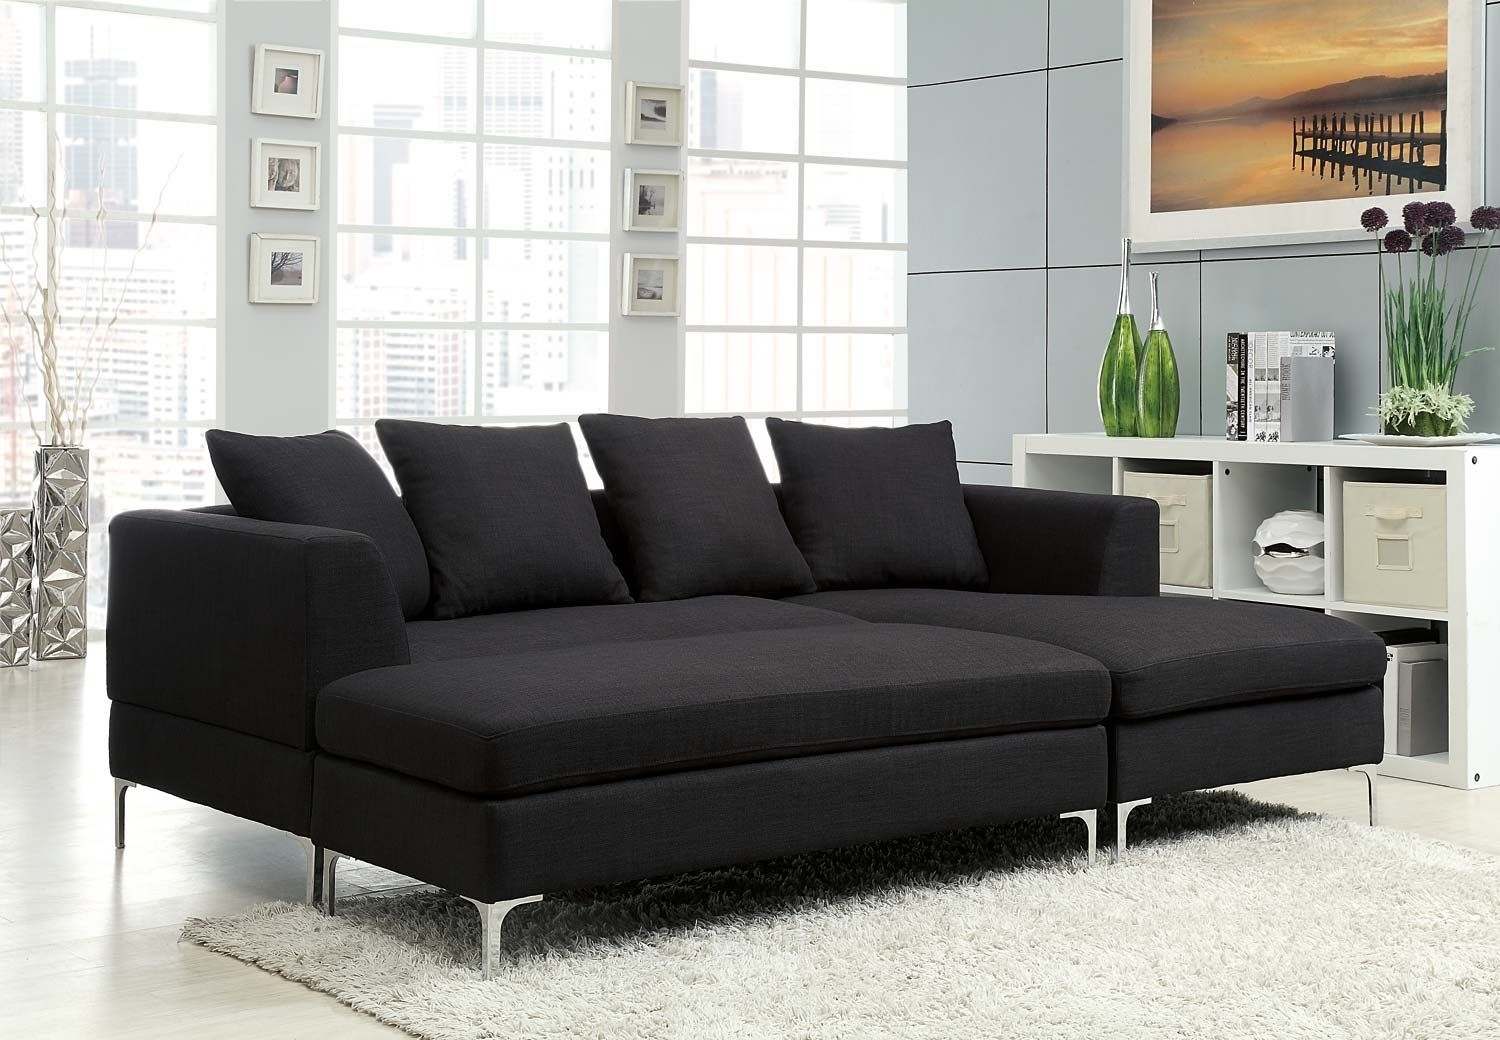 Sears Burton Sectional Sofa | Acrylics | Pinterest inside Burton Leather 3 Piece Sectionals (Image 19 of 30)